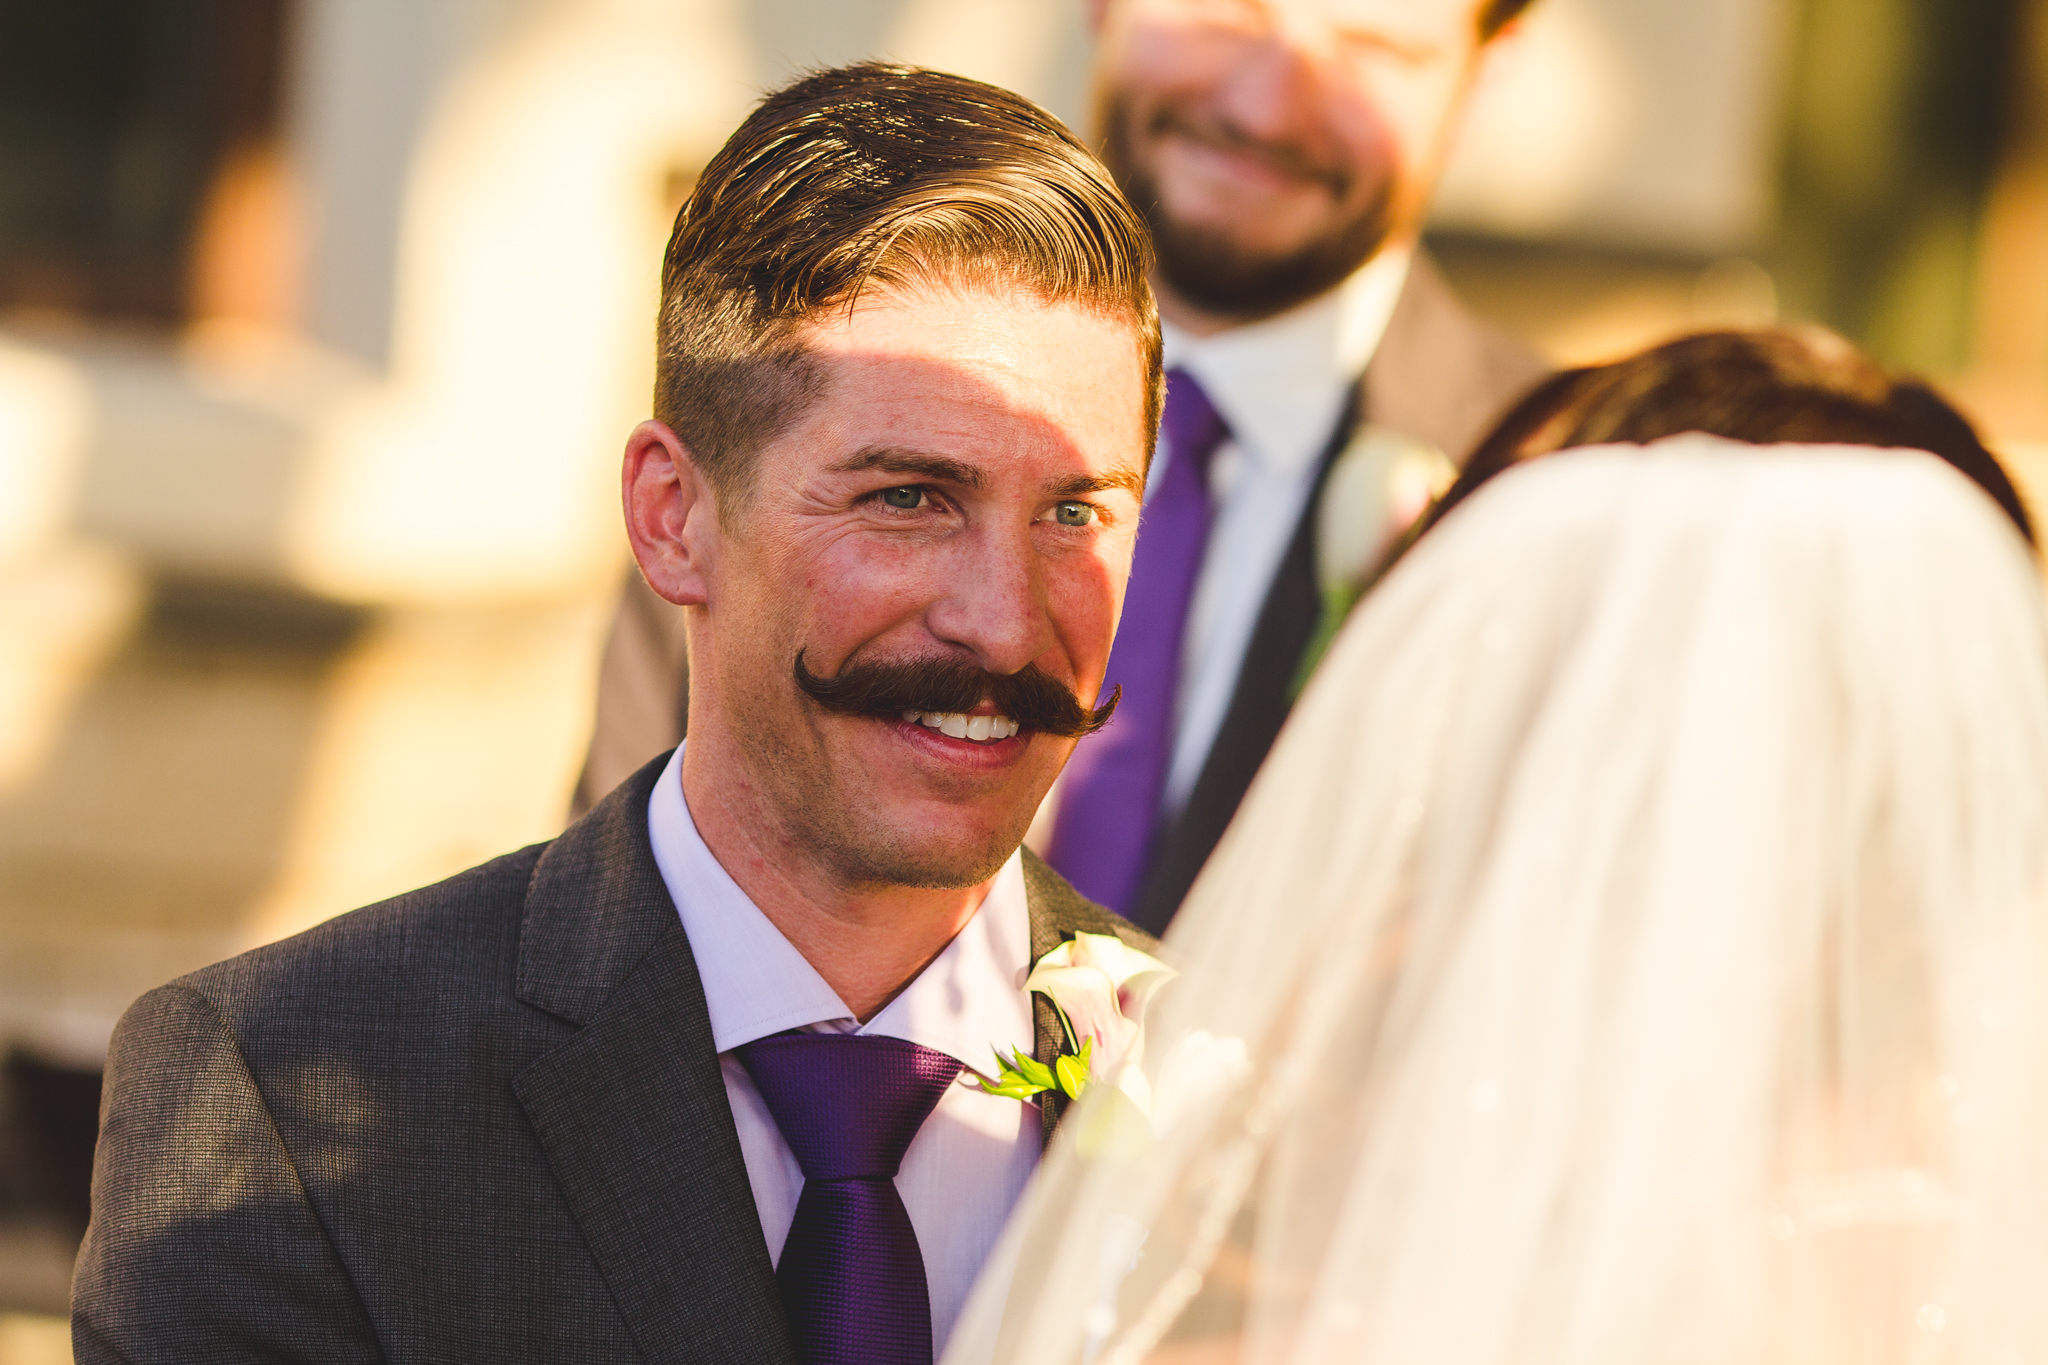 chad groom smiles on at his bride